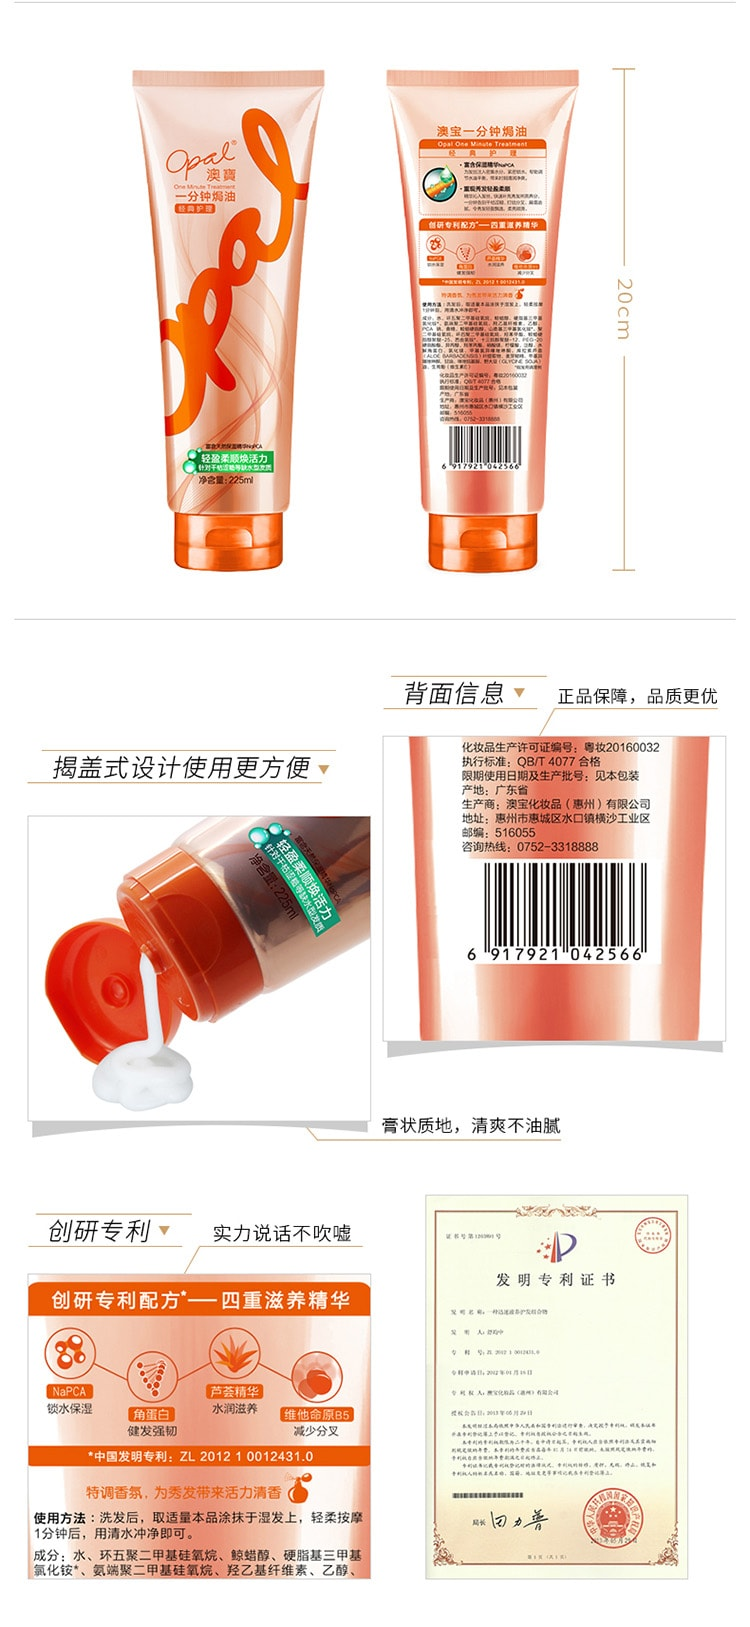 One Minute Treatment - Packaging Details 2